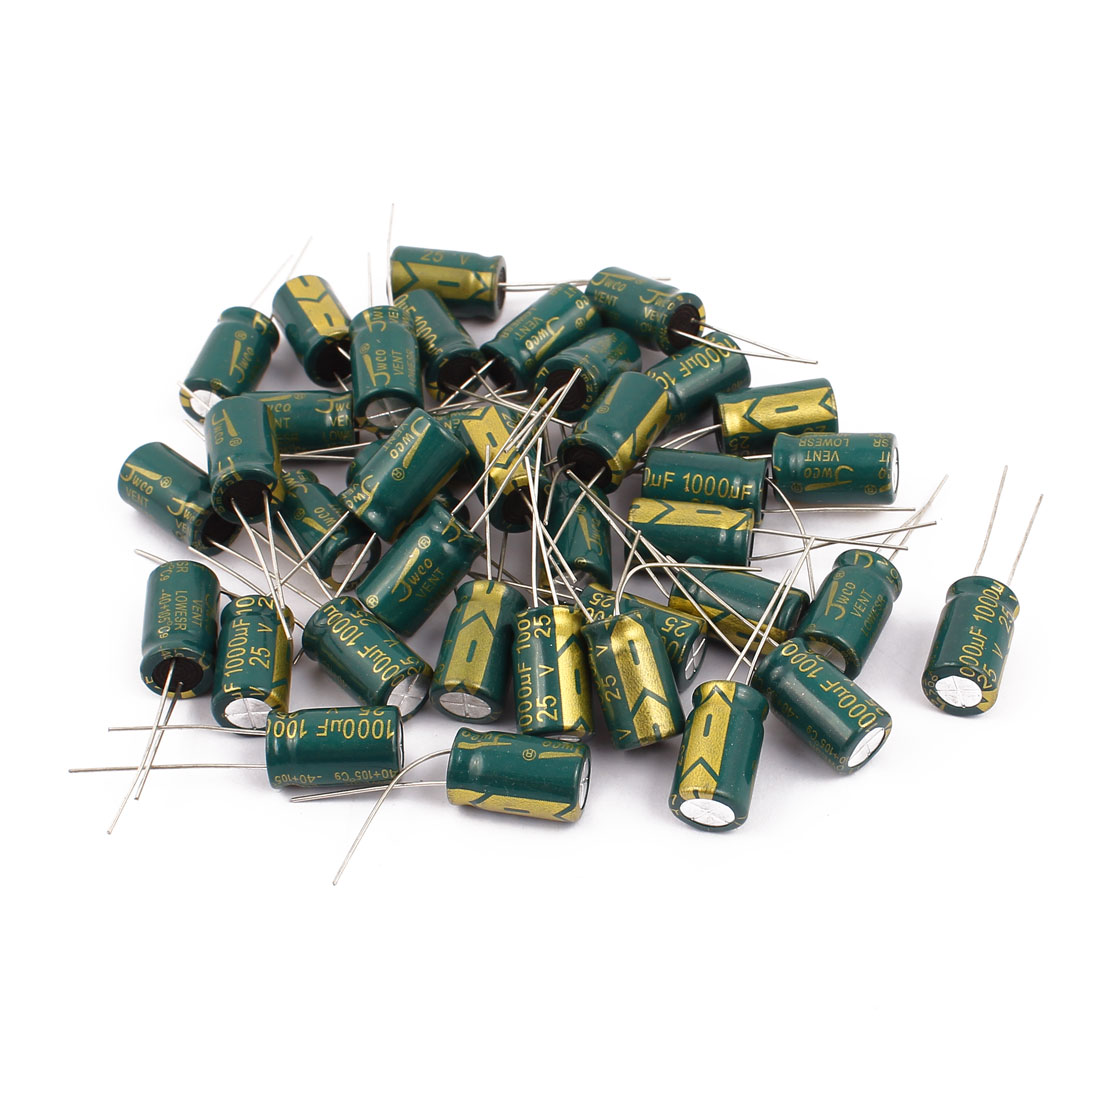 38Pcs 25V 1000uF Aluminum Electrolytic Capacitors 105 degree Celsius 10x17mm